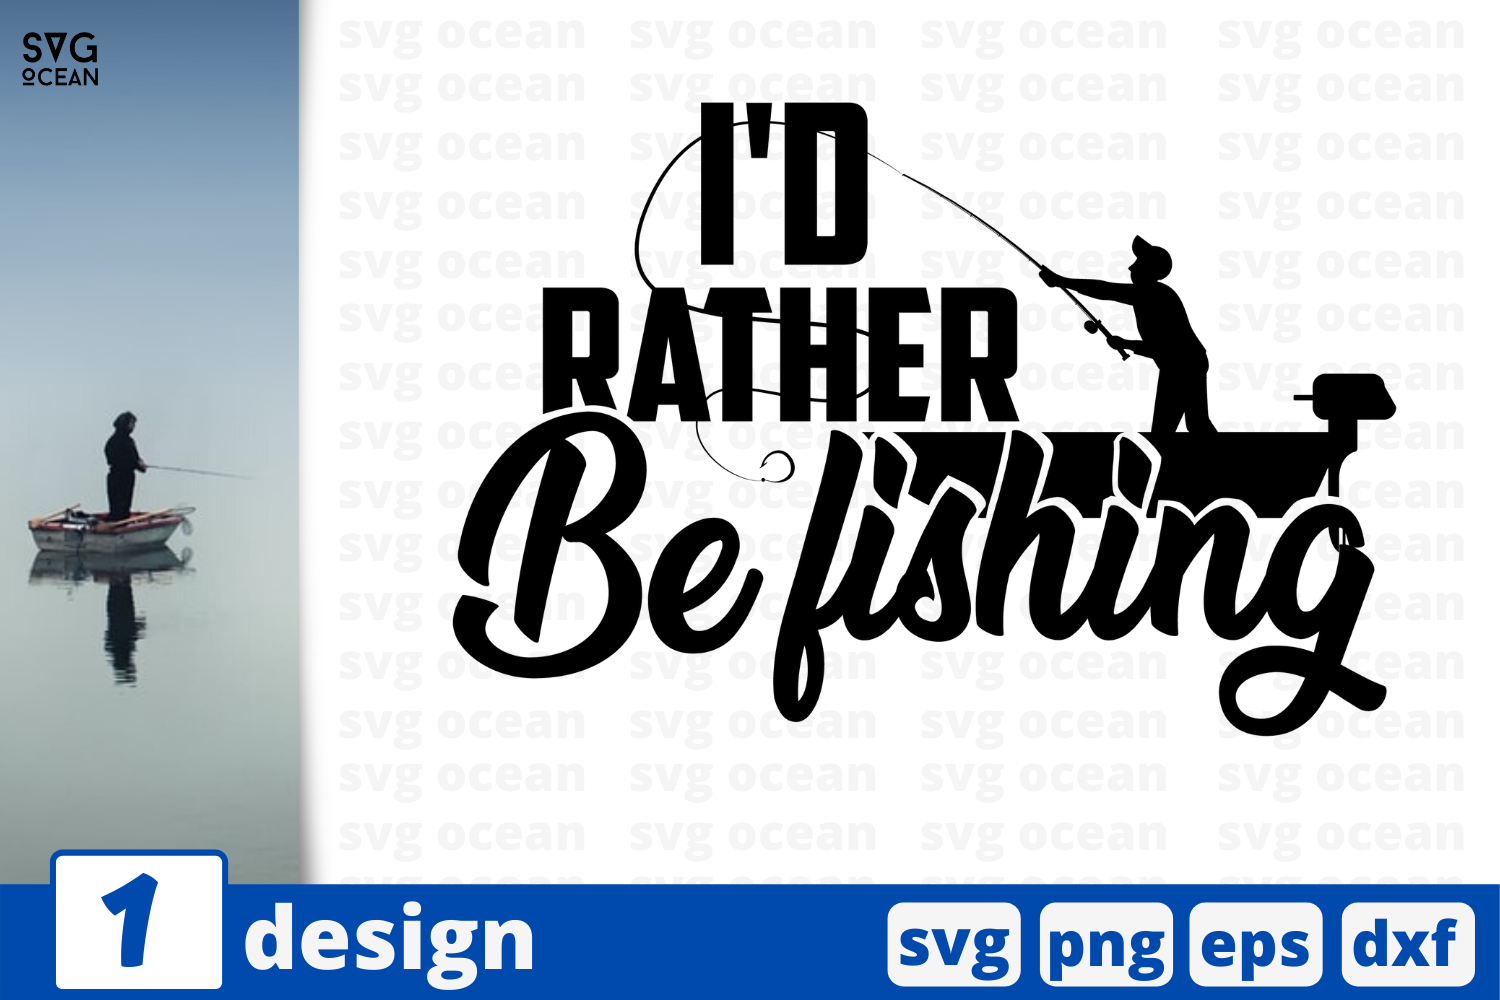 Download Free I D Rather Be Fishing Graphic By Svgocean Creative Fabrica for Cricut Explore, Silhouette and other cutting machines.